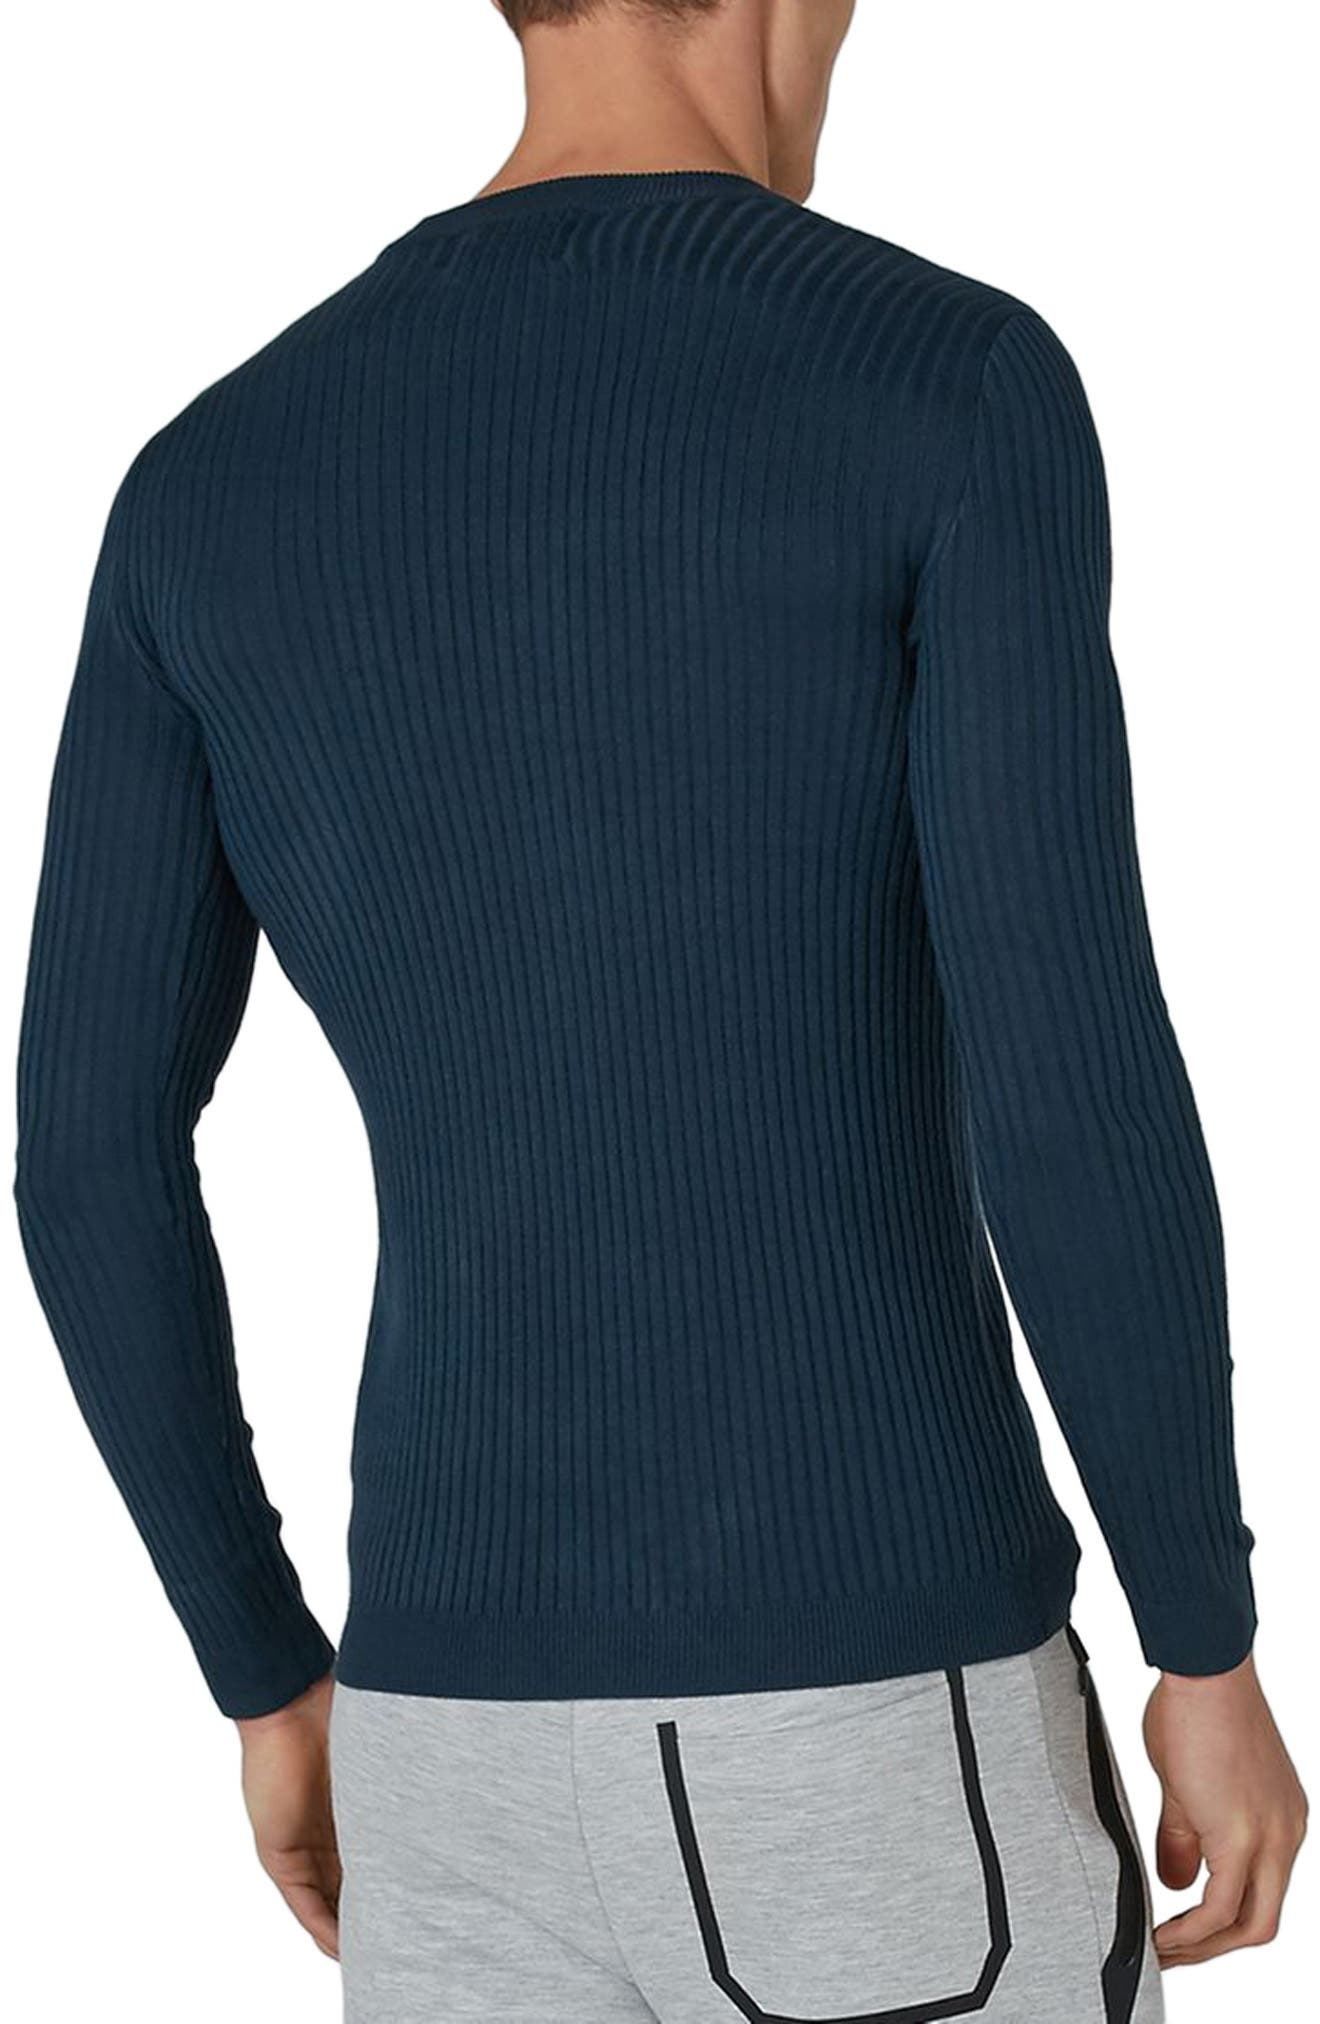 Ribbed Muscle Fit Sweater,                             Alternate thumbnail 2, color,                             420